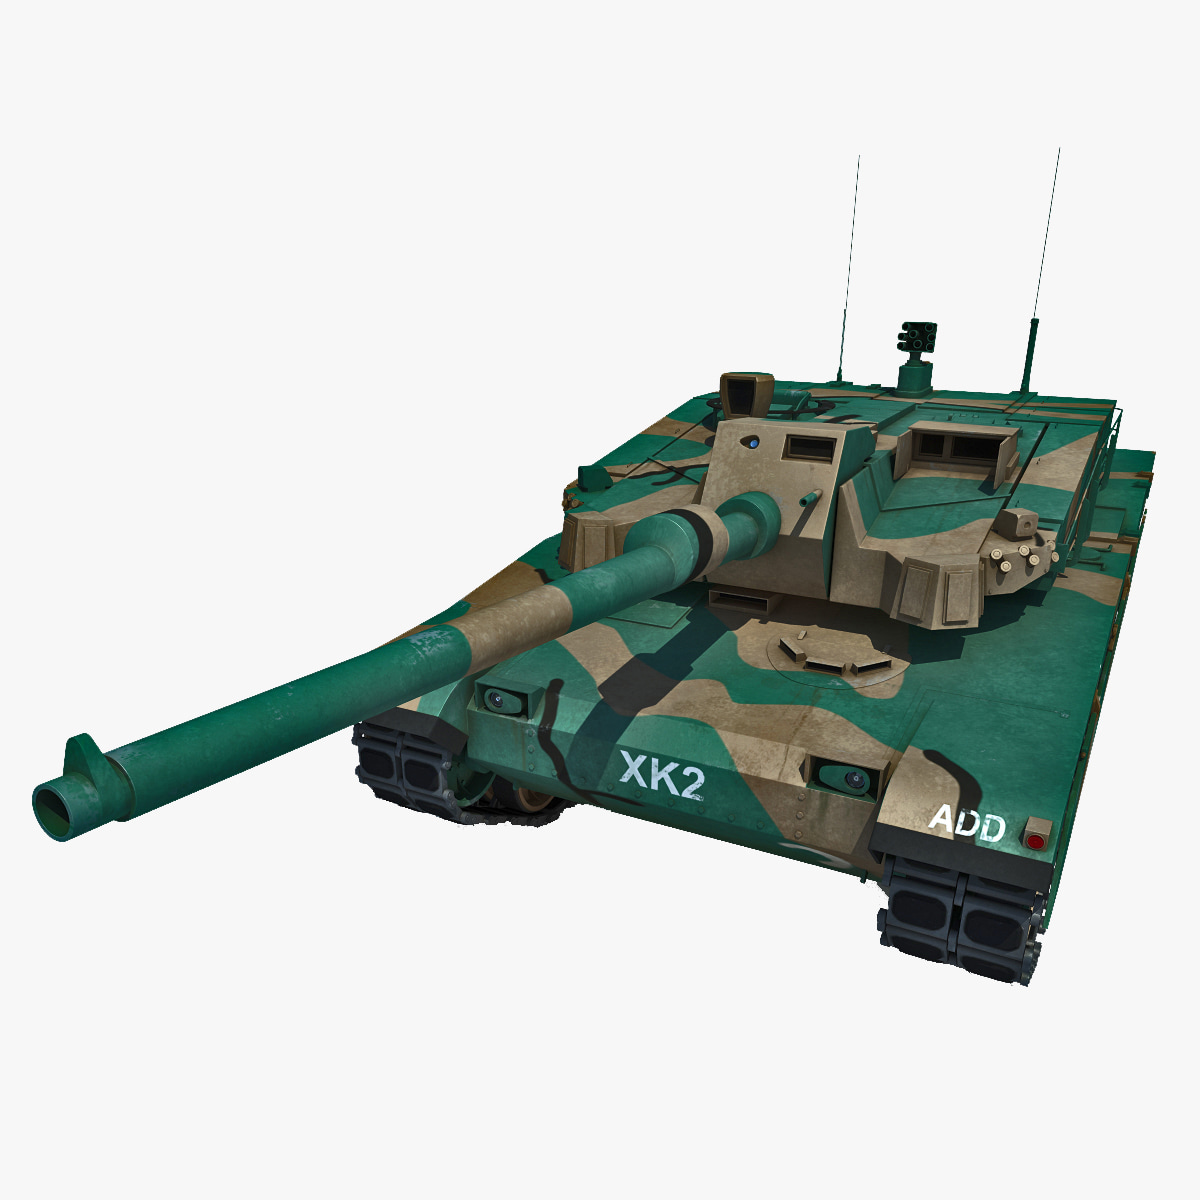 Korea_Main_Battle_Tank_XK2_Black_Panther_v1_000_2.jpg